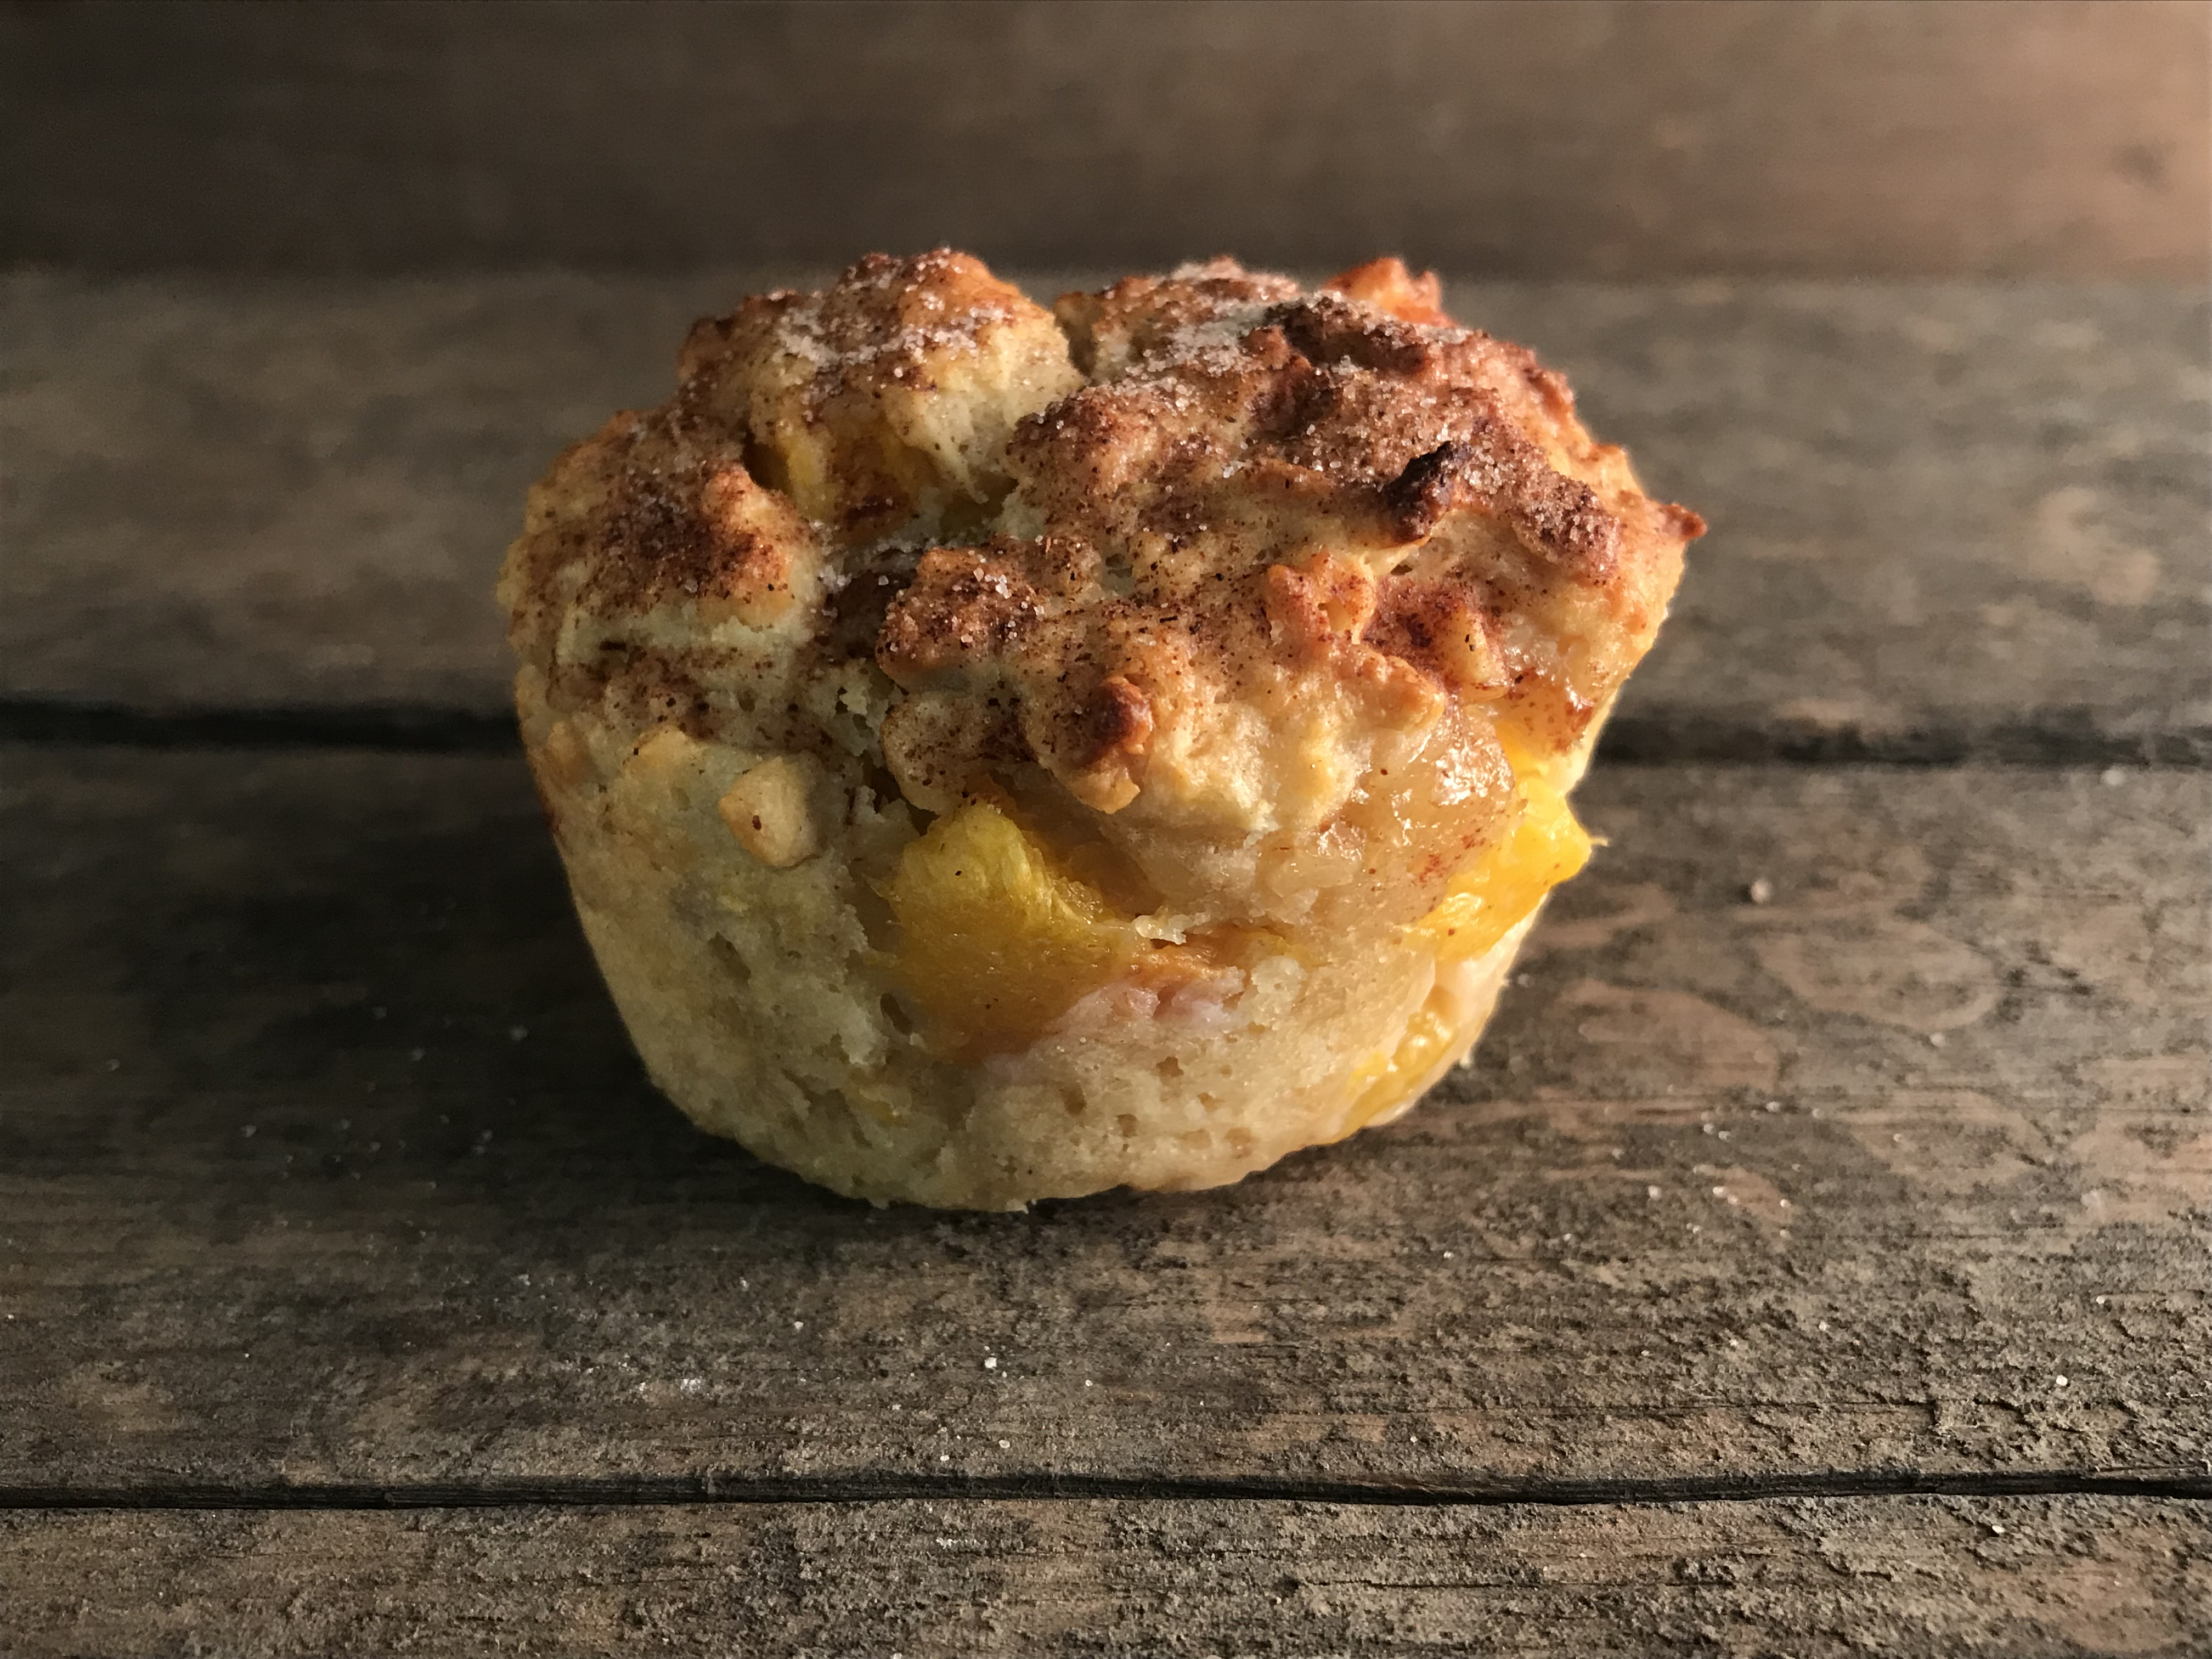 Peach oat muffins recipe, as seen on Indy Style morning show